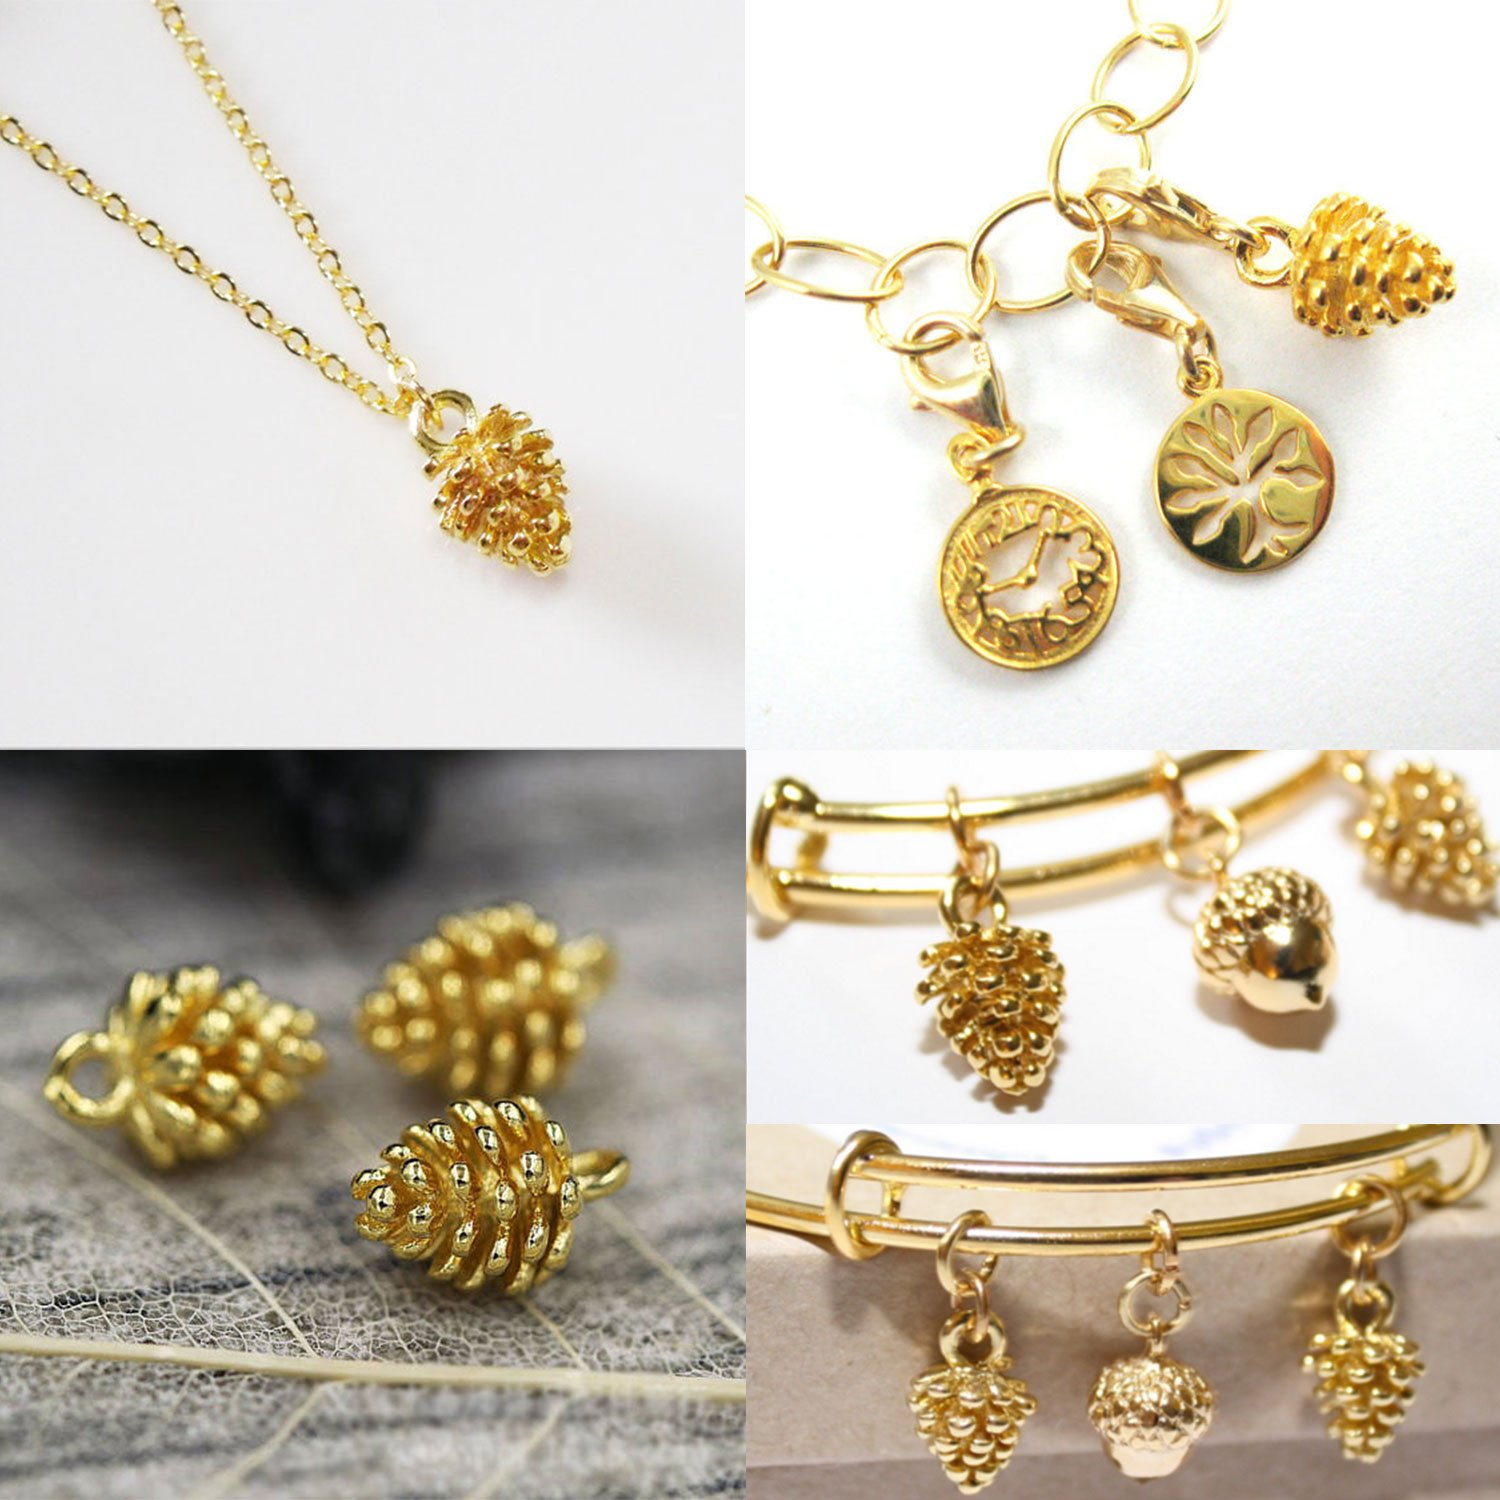 ea6739d077d Amazon.com  12PCS Gold Plated Brass Small Pine Cones Charms Pendant  Accessories Bulk Lots for Jewelry Making